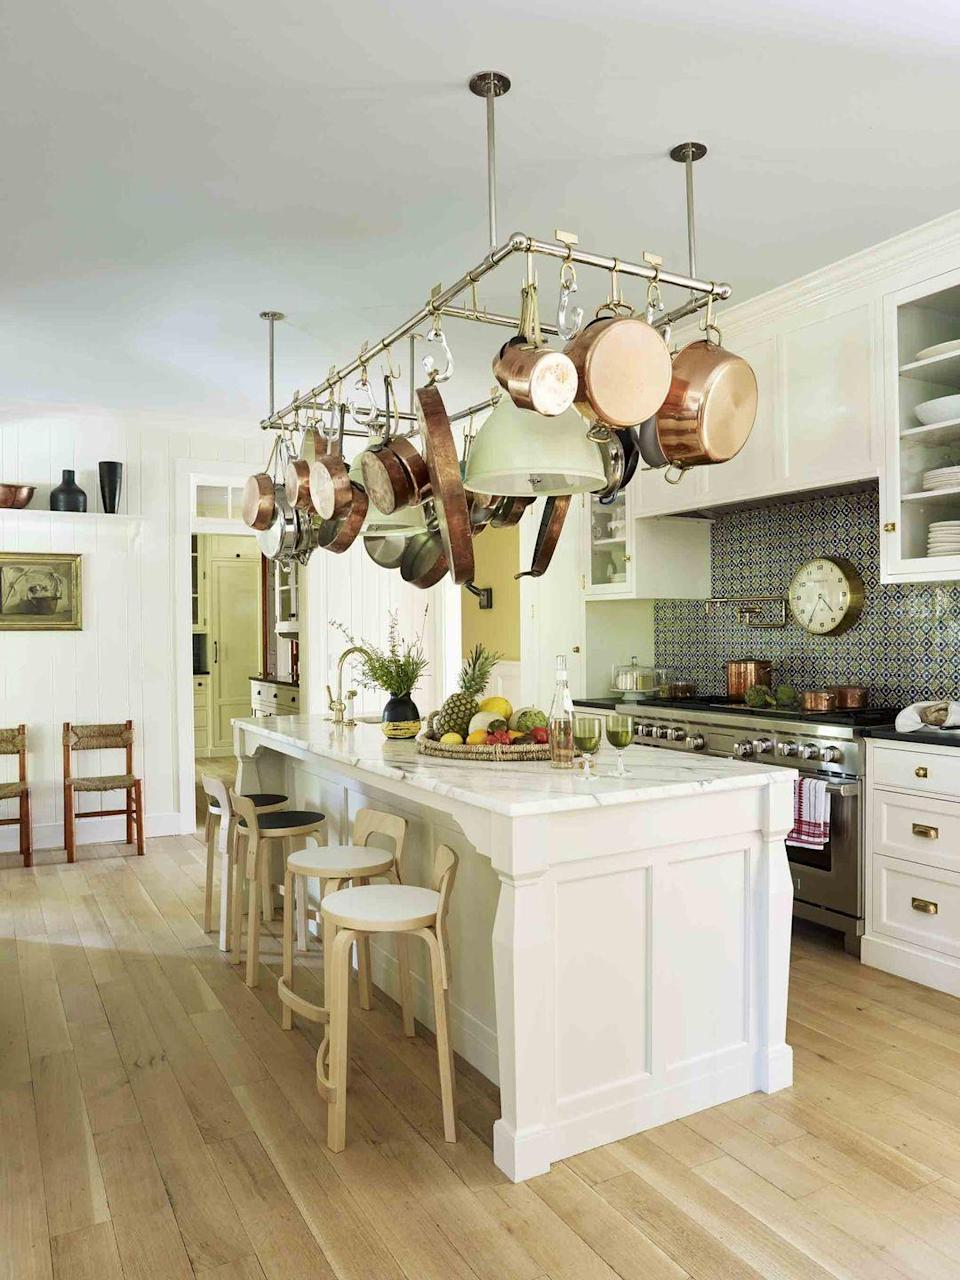 "<p>We love the French provincial look of using hanging storage for your best—and most frequently used—pots and pans. Designer <a href=""http://davidnettodesign.com/"" rel=""nofollow noopener"" target=""_blank"" data-ylk=""slk:David Netto'"" class=""link rapid-noclick-resp"">David Netto'</a>s use of added lighting ensures this hanging storage piece can be one giant light fixture if you decide to give your cookware another home, but it offers a bit of Old-World charm to the kitchen with very low lift. </p>"